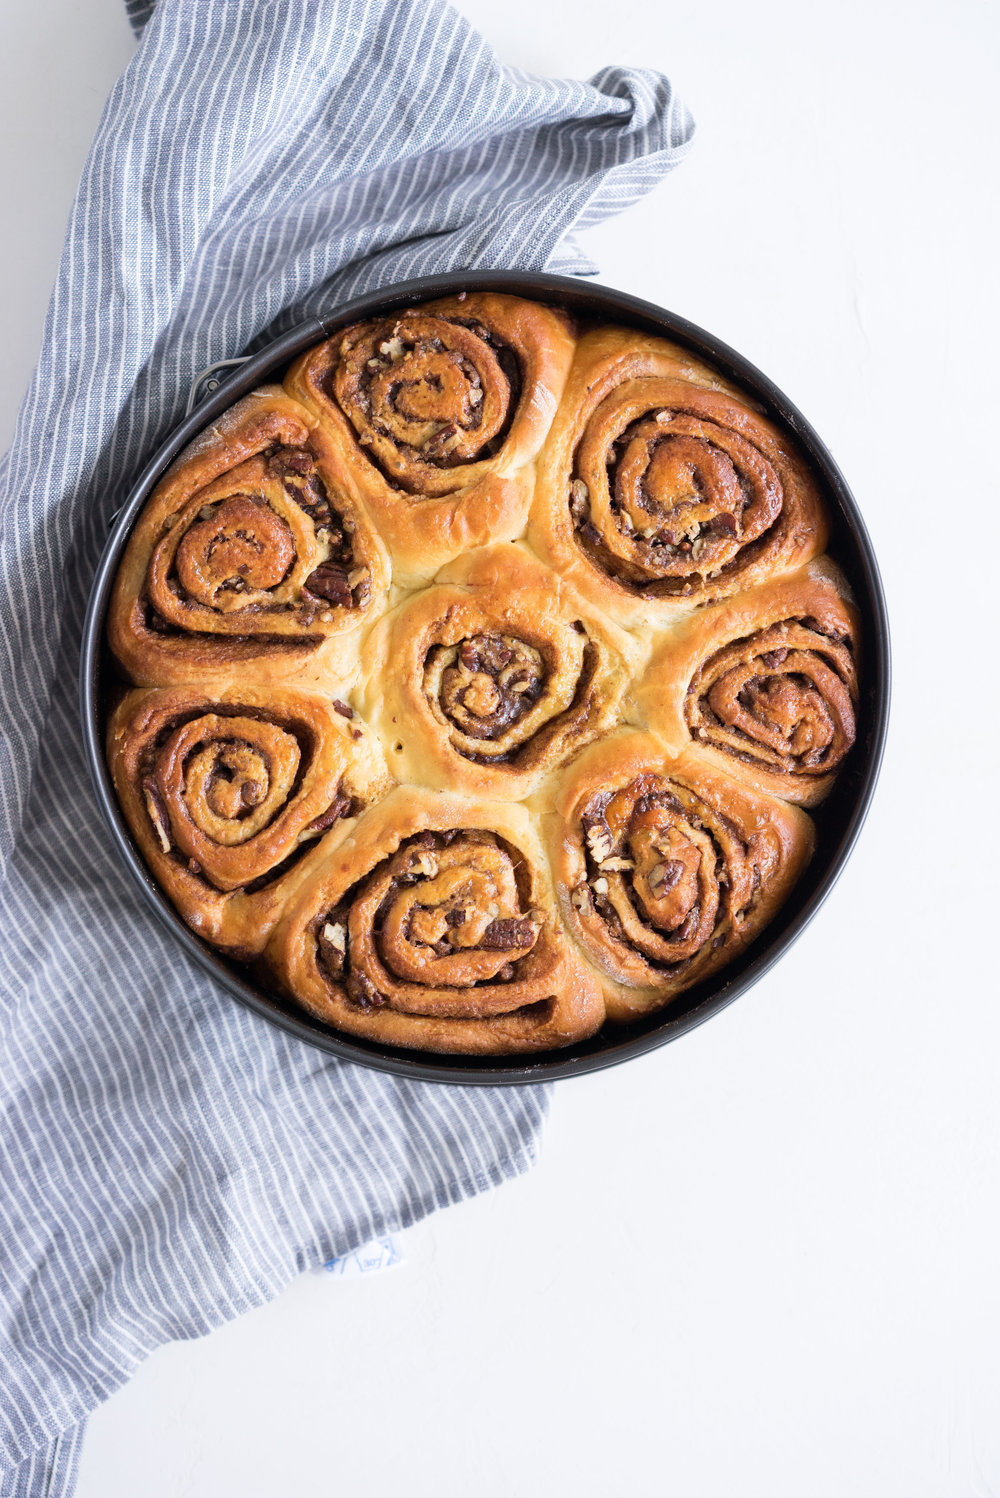 Overnight Cinnamon Buns with Cream Cheese Frosting - Pillowy brioche that is prepared the night before, then rolled out the next morning, stuffed with cinnamon sugar and toasted peanuts, then smothered in cream cheese frosting while still warm. The perfect treat to please a crowd.